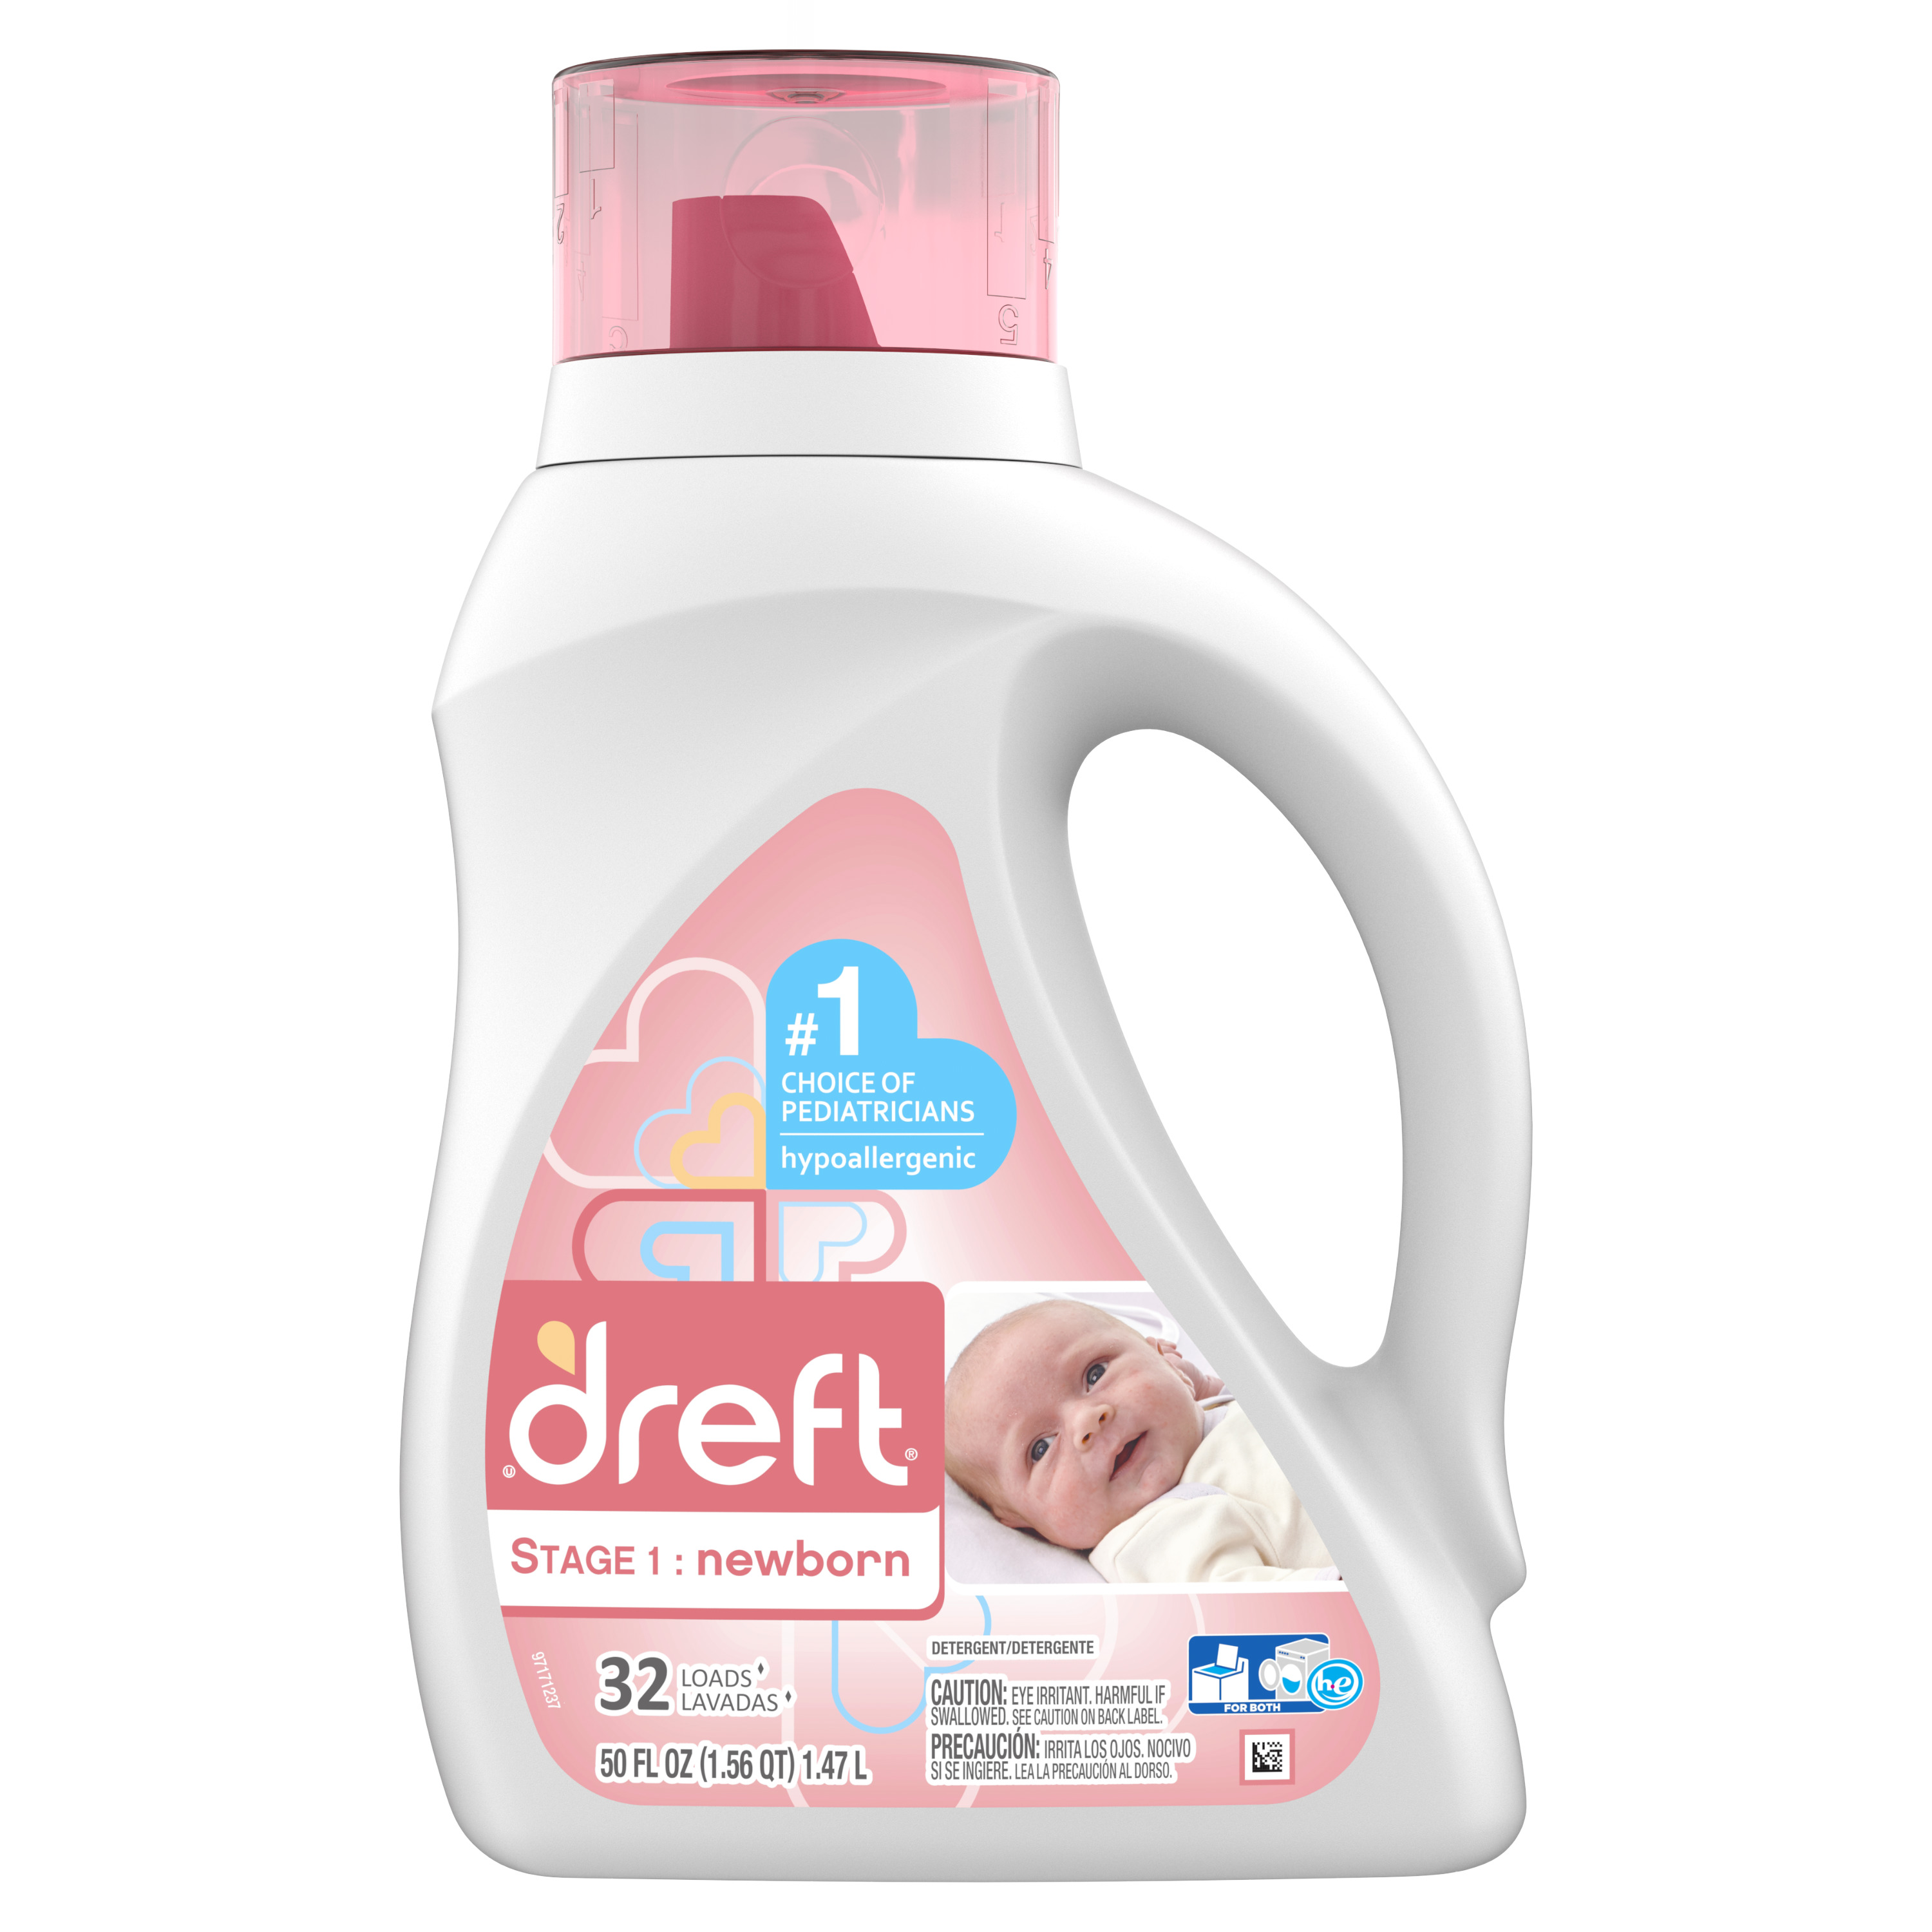 Dreft Stage 1: Newborn Liquid Laundry Detergent, 32 Loads 50 fl oz